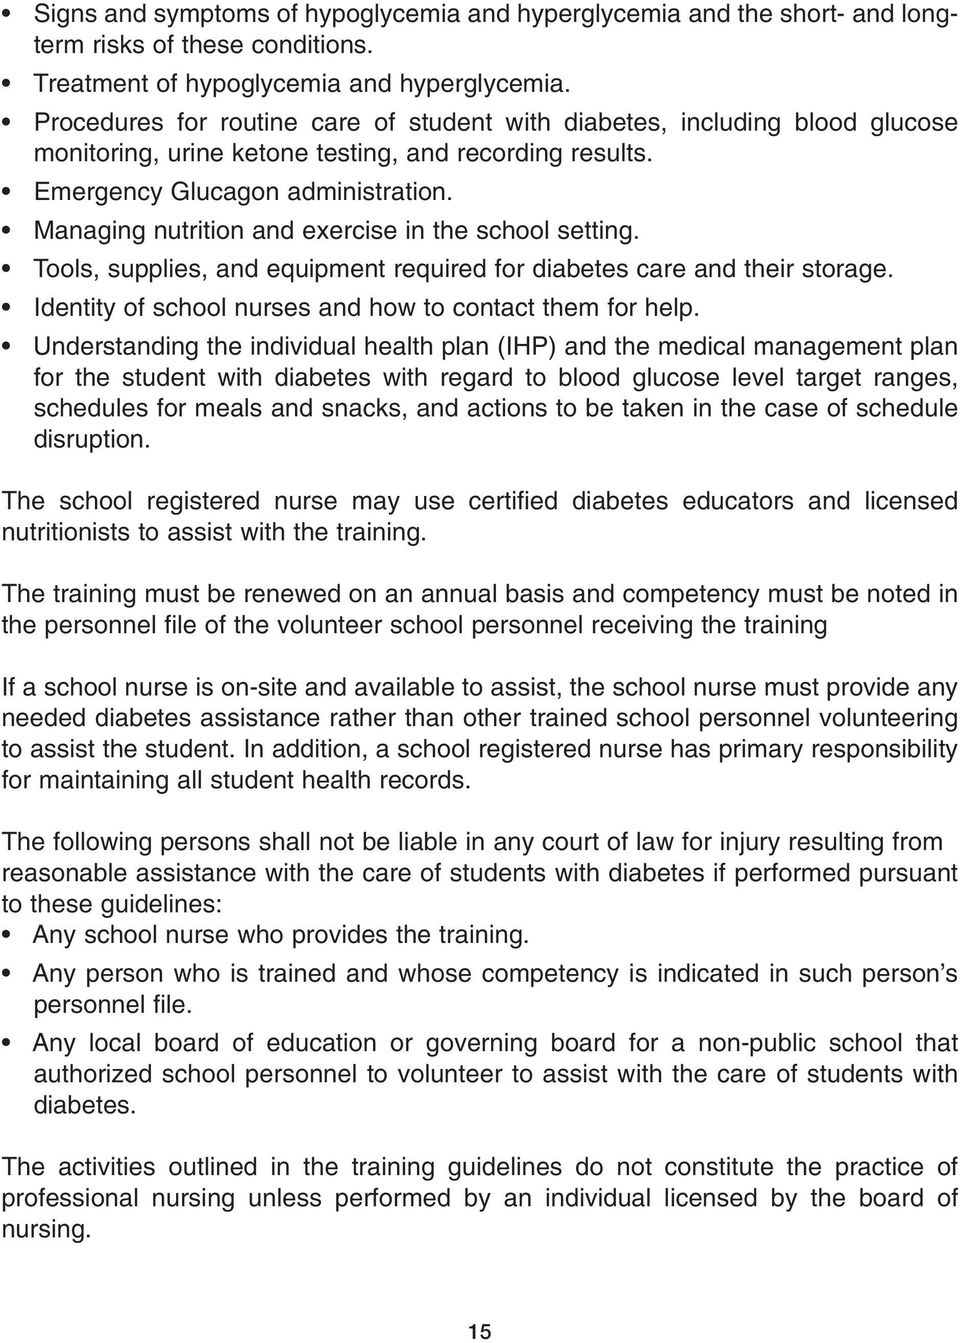 Managing nutrition and exercise in the school setting. Tools, supplies, and equipment required for diabetes care and their storage. Identity of school nurses and how to contact them for help.